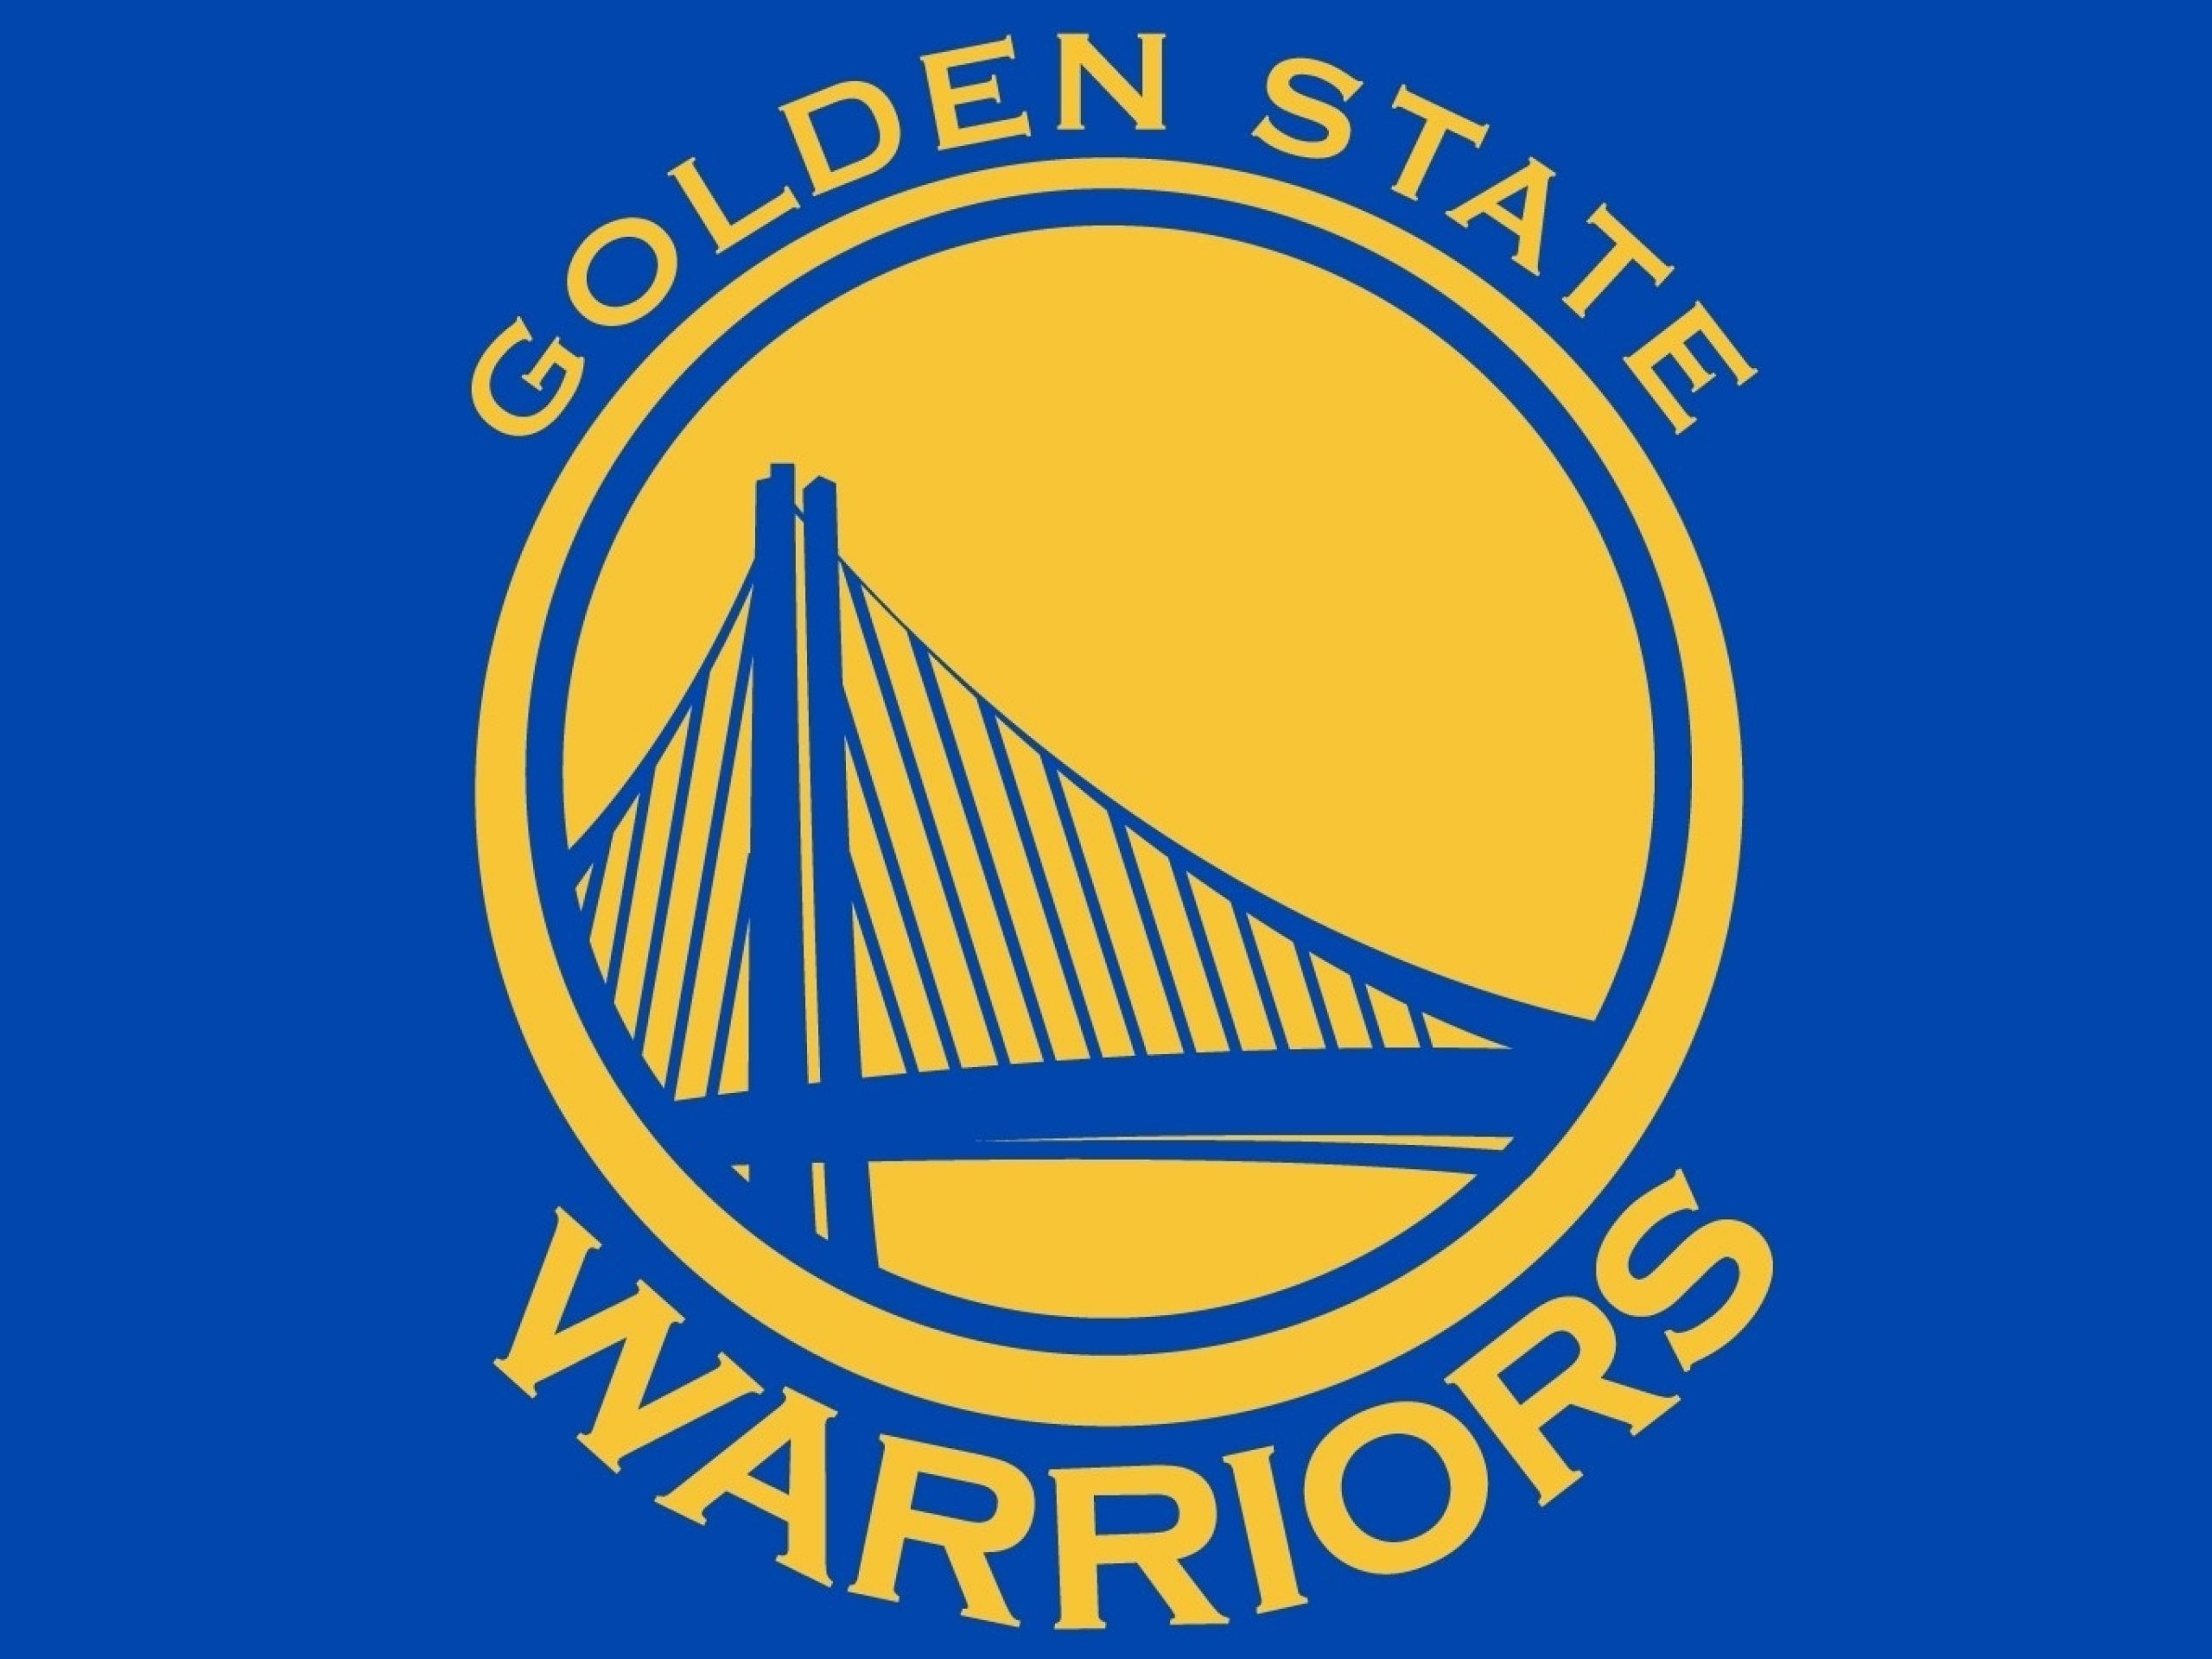 Golden State Warriors wallpaper ·①